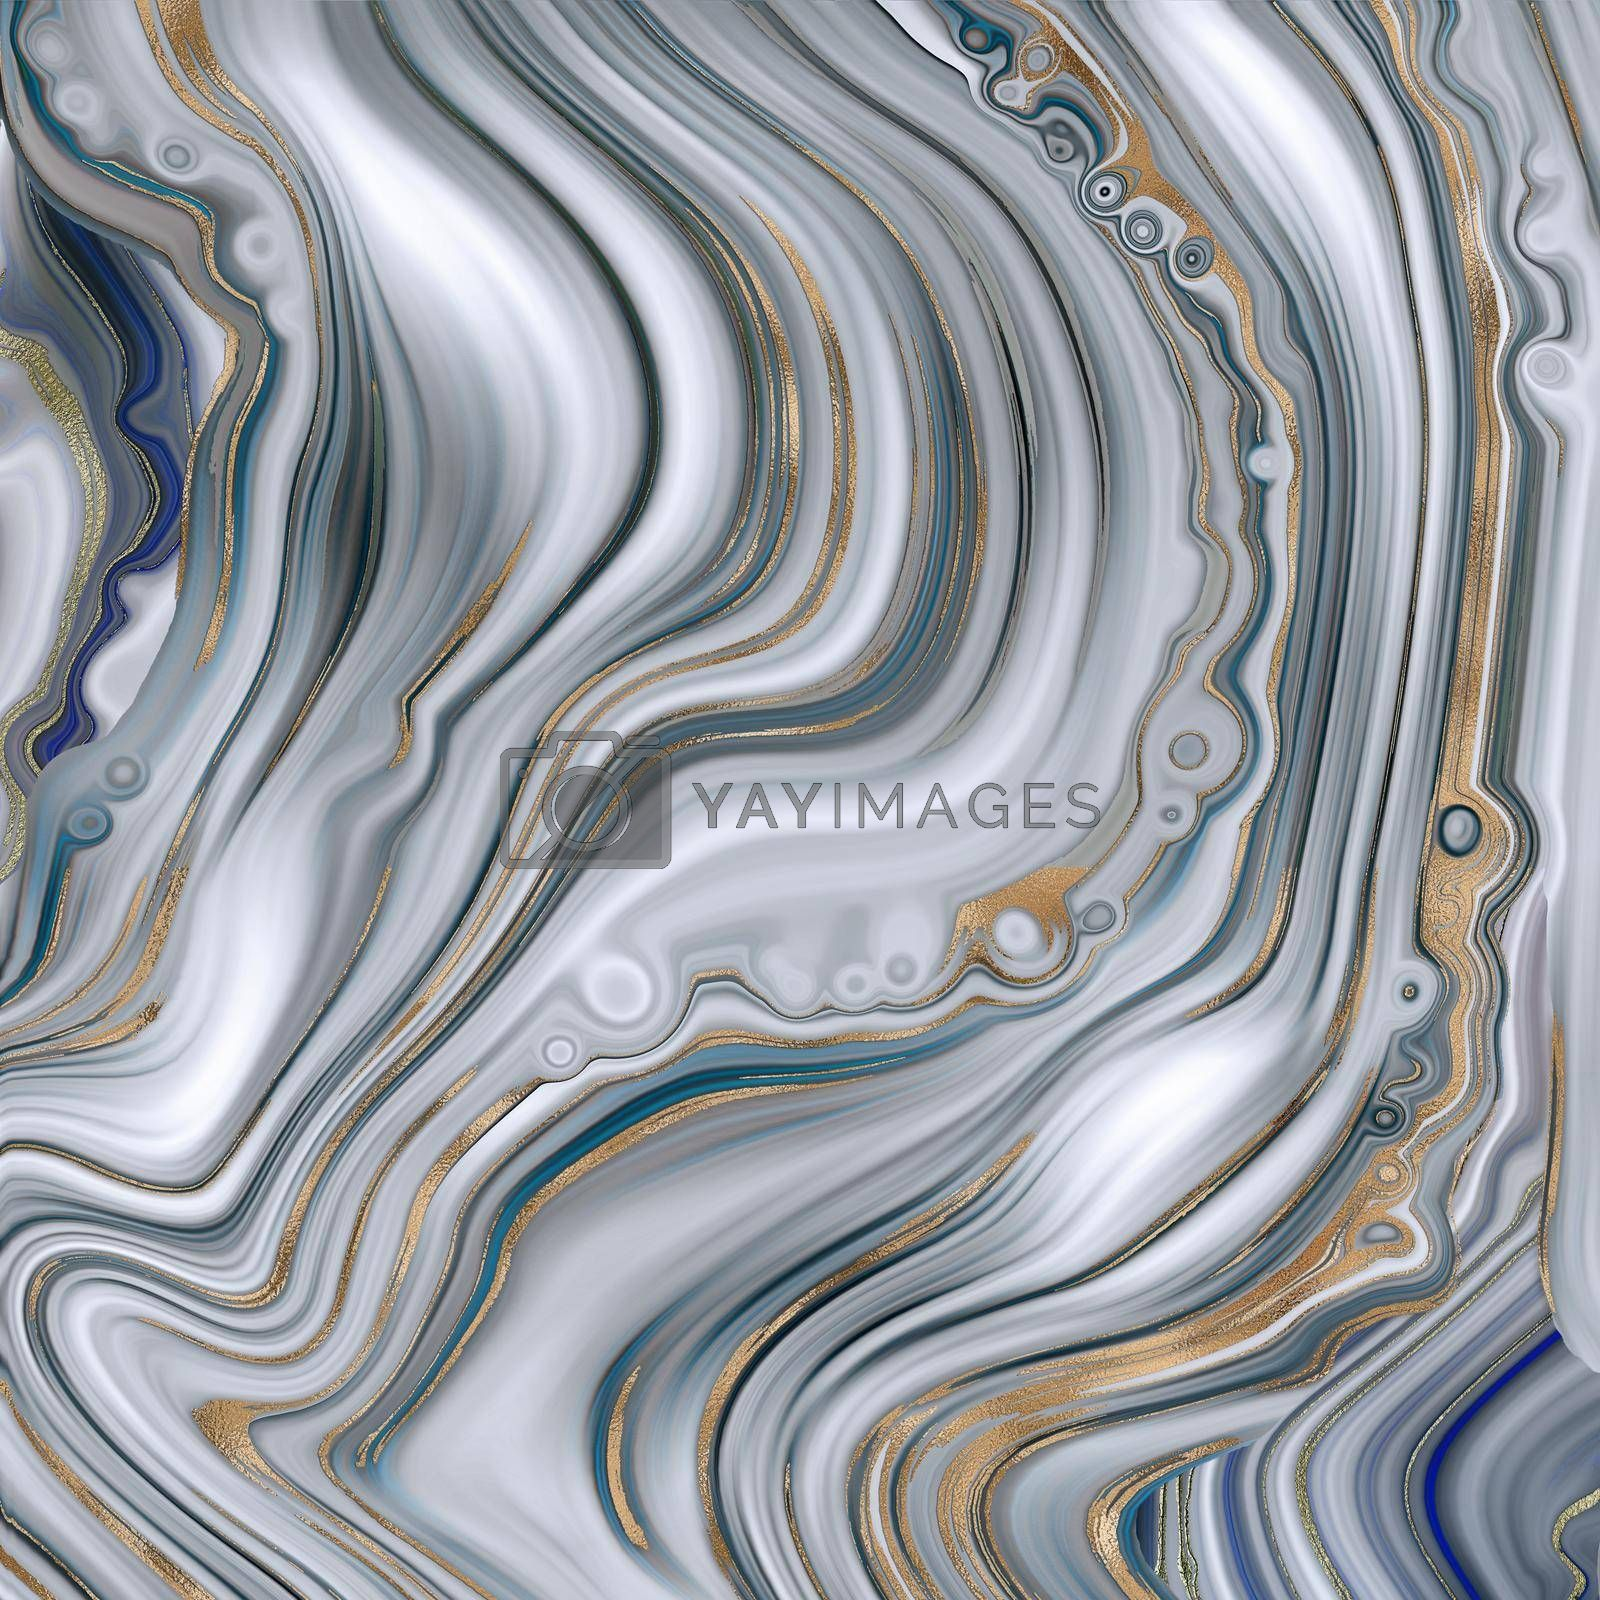 Abstract agate marble background in pastel blue, fake stone texture, trendy blue white marbling effect with gold veins, creative agate, artistic marble agate stone. Modern marbled surface Illustration